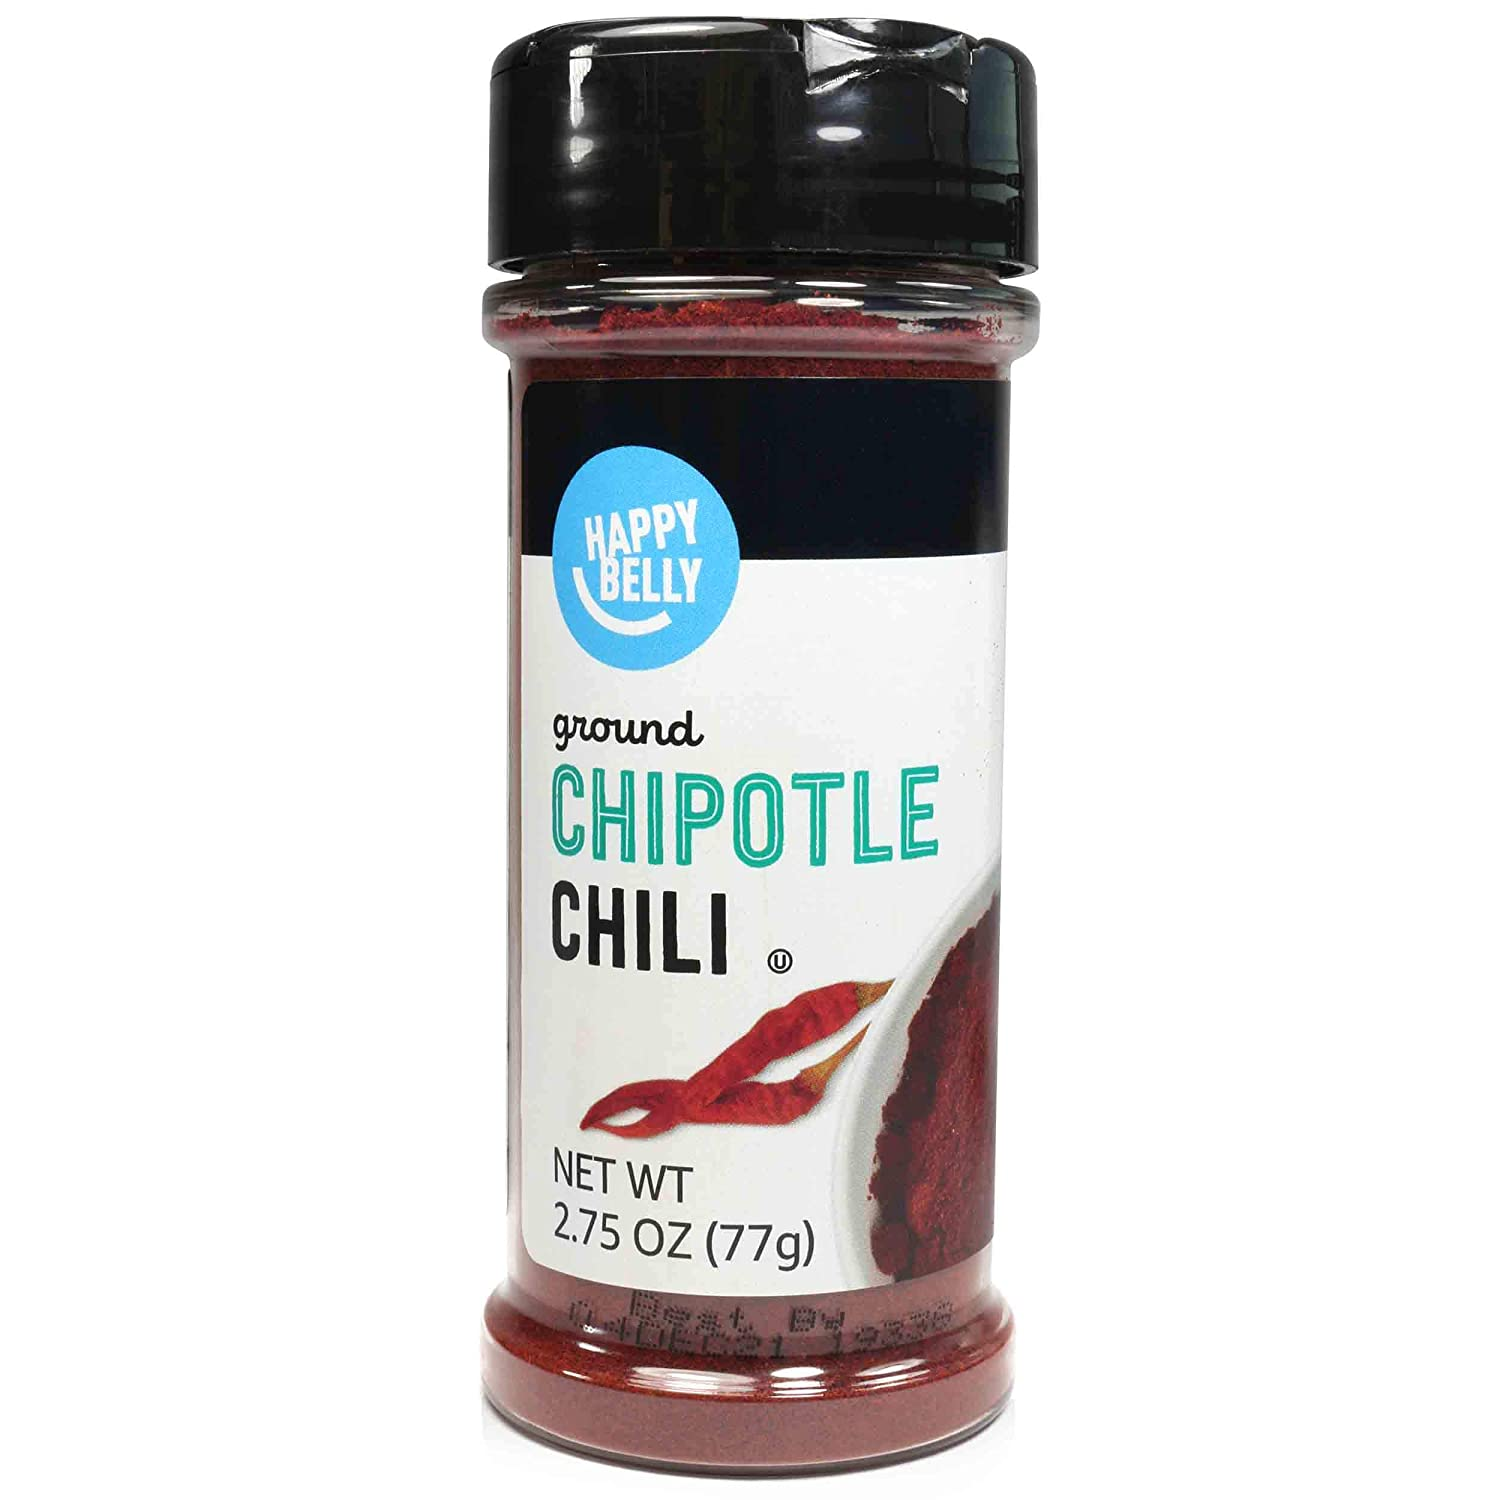 Amazon Brand - Happy Year-end gift Belly oz Crushed Chili 2.75 Award Chipotle